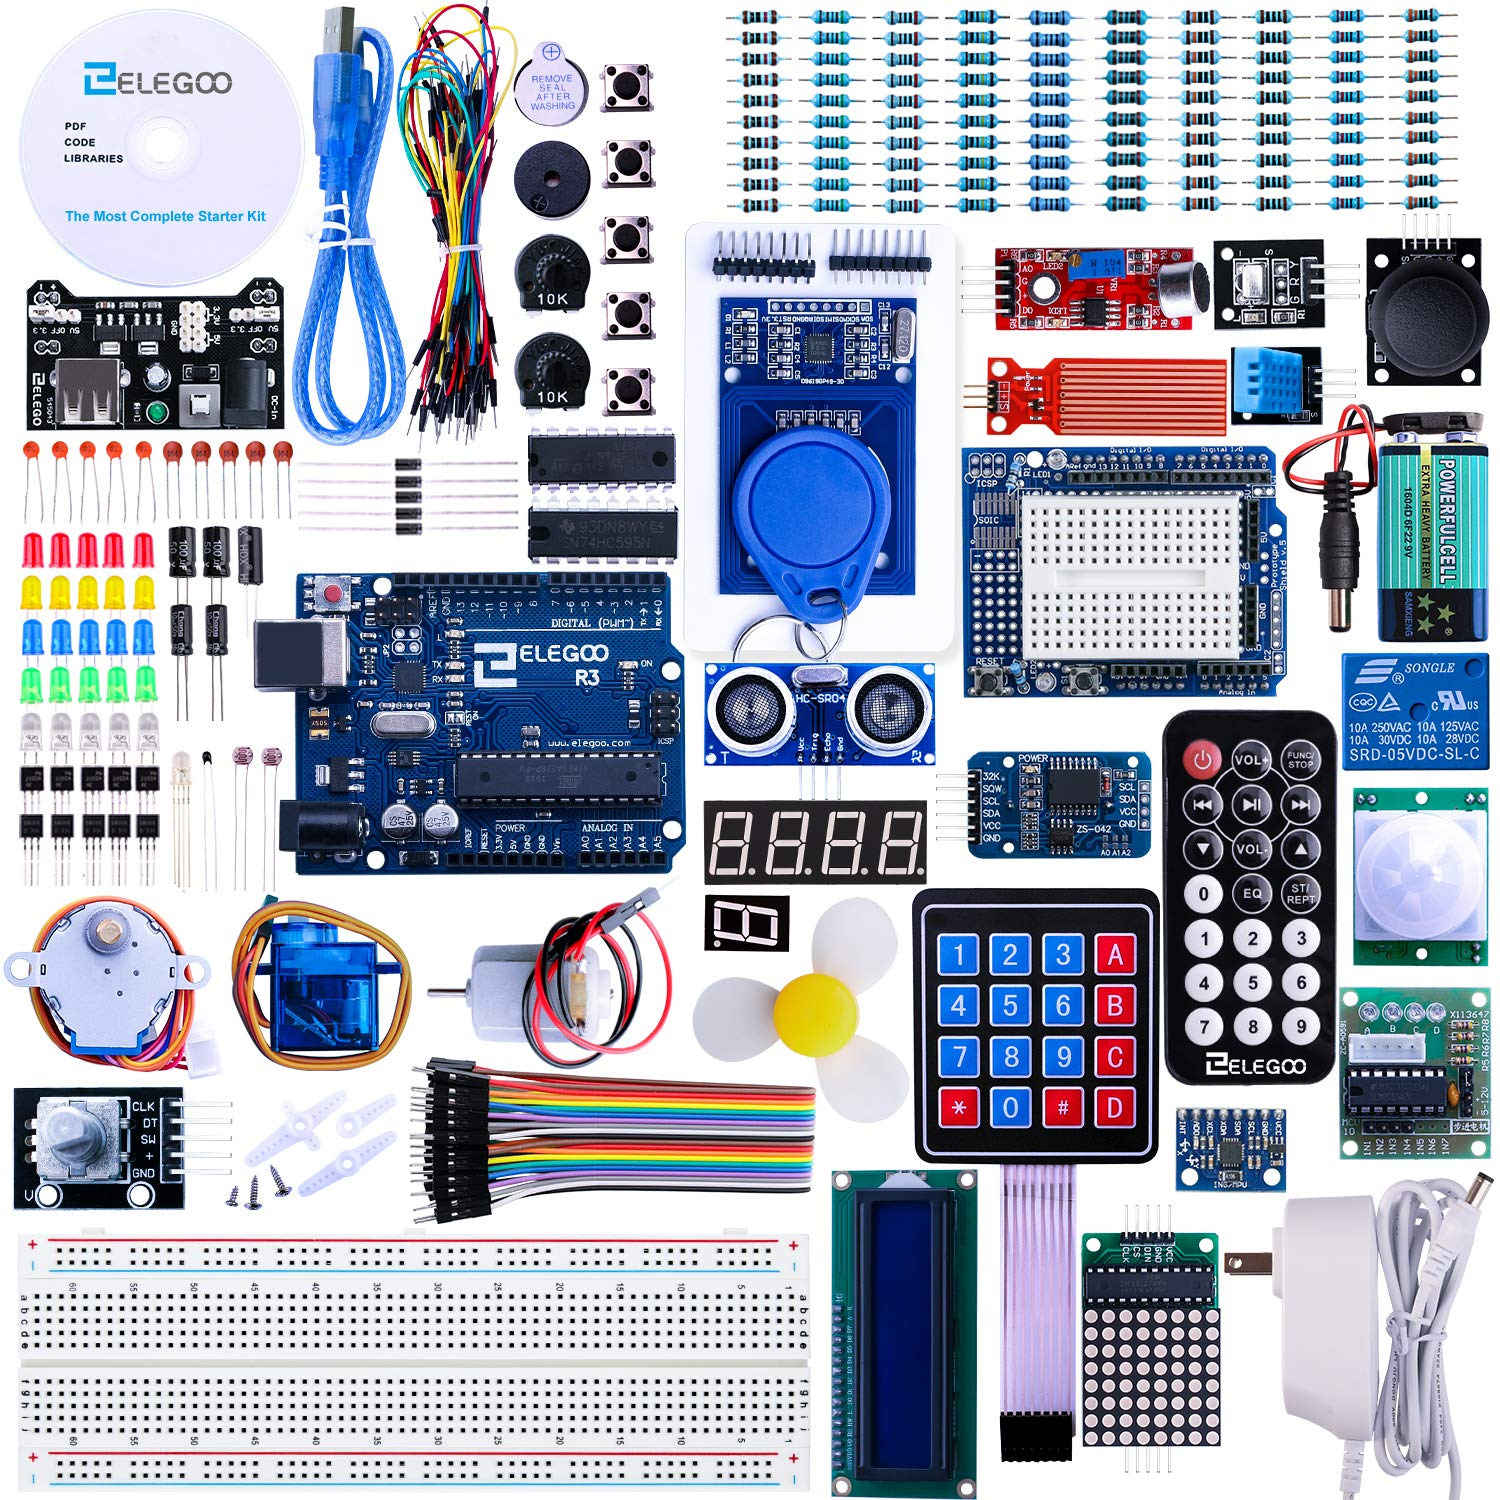 ELEGOO UNO R3 Project Most Complete Starter Kit wTutorial Compatible with Arduino IDE 63 Items